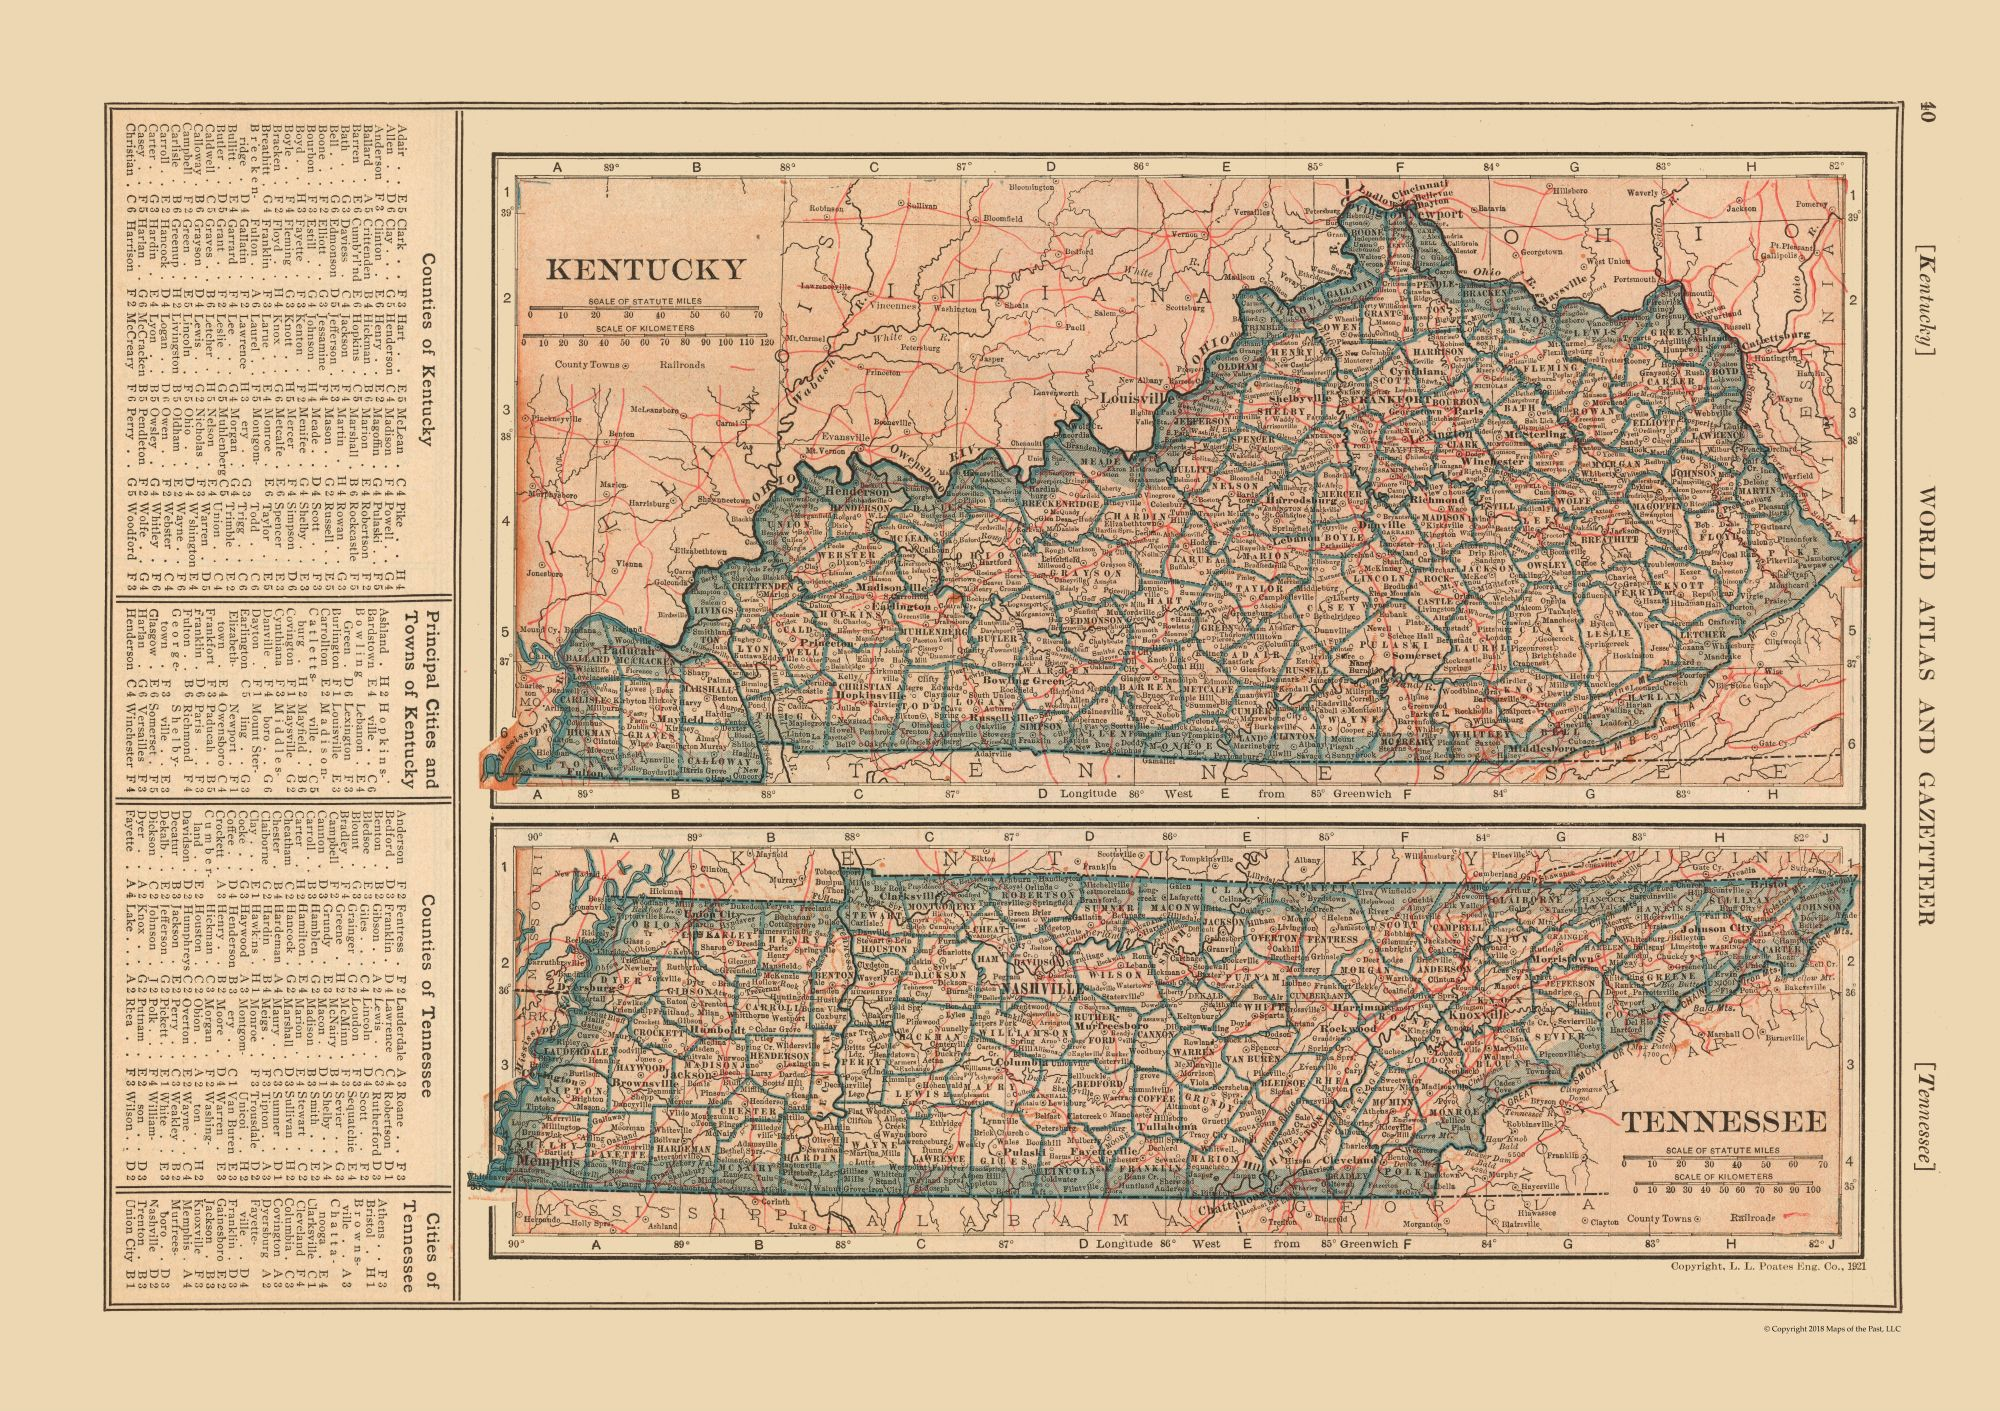 Old State Map - Kentucky - Tennessee - Reynold 1921 - 32.59 x 23 on kentucky state travel map, kentucky and tennessee county maps, kentucky state county map, kentucky state fair map, indiana tri-state maps, hancock county property maps, kentucky wall maps, state of tennessee district maps, kentucky state zip code map, kentucky and virginia maps, kentucky state university map, kentucky state information, kentucky and surrounding states map, kentucky state parks campgrounds, ky parks and maps, kentucky frontier maps, kentucky department of transportation maps, colorado elk concentration maps, google maps, kentucky and its capital,